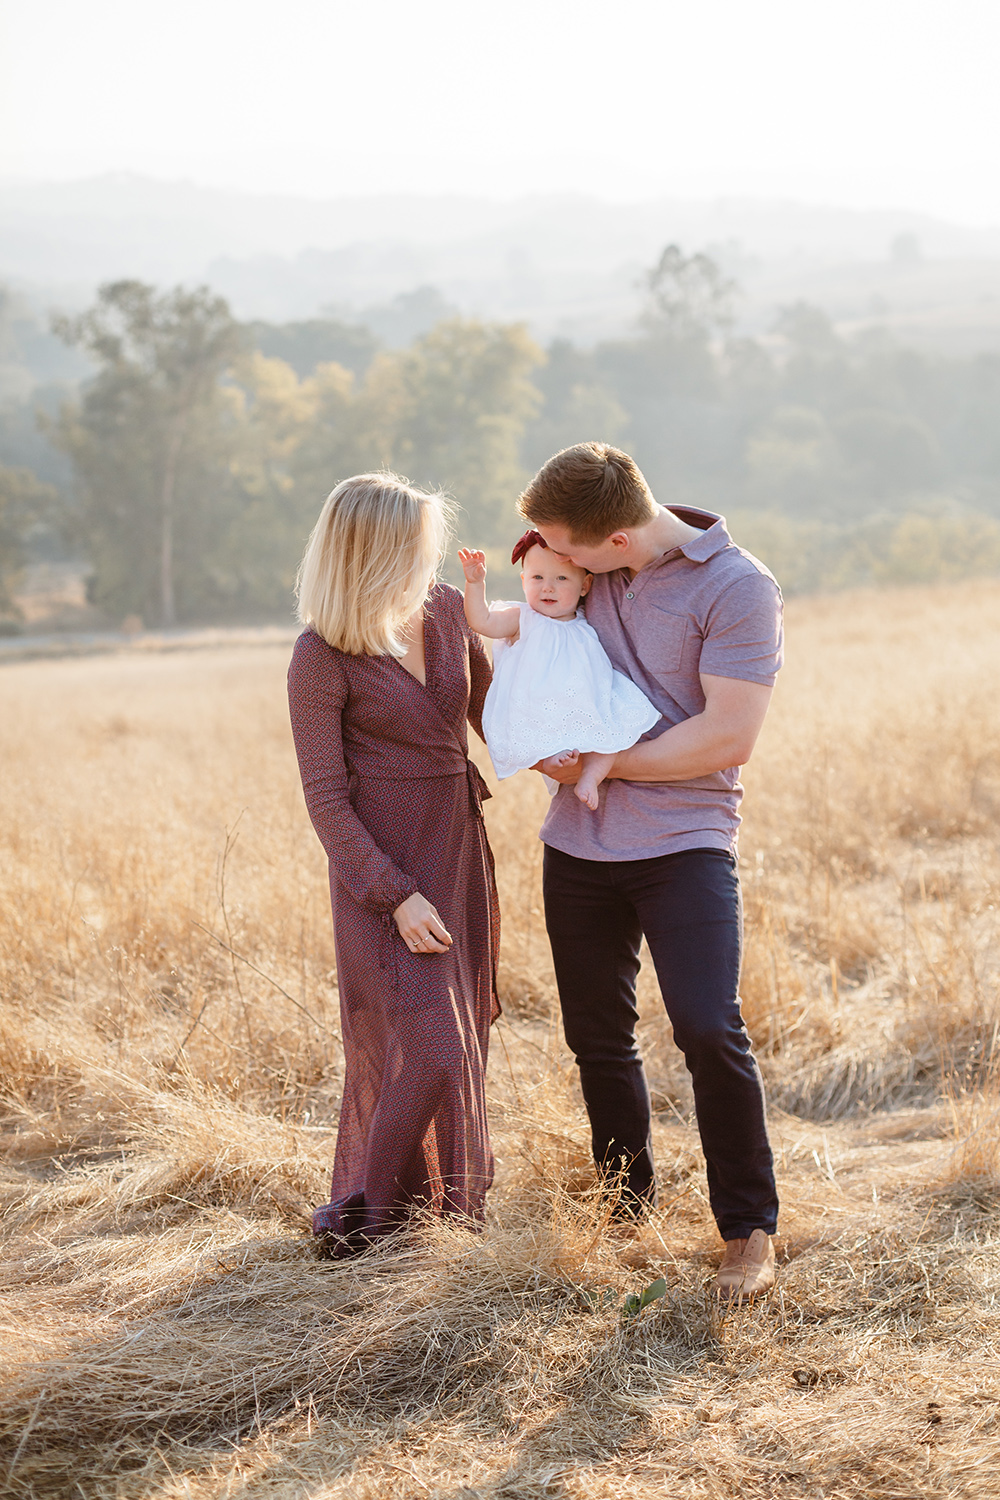 Family session in the rolling hills of Palo Alto, California.